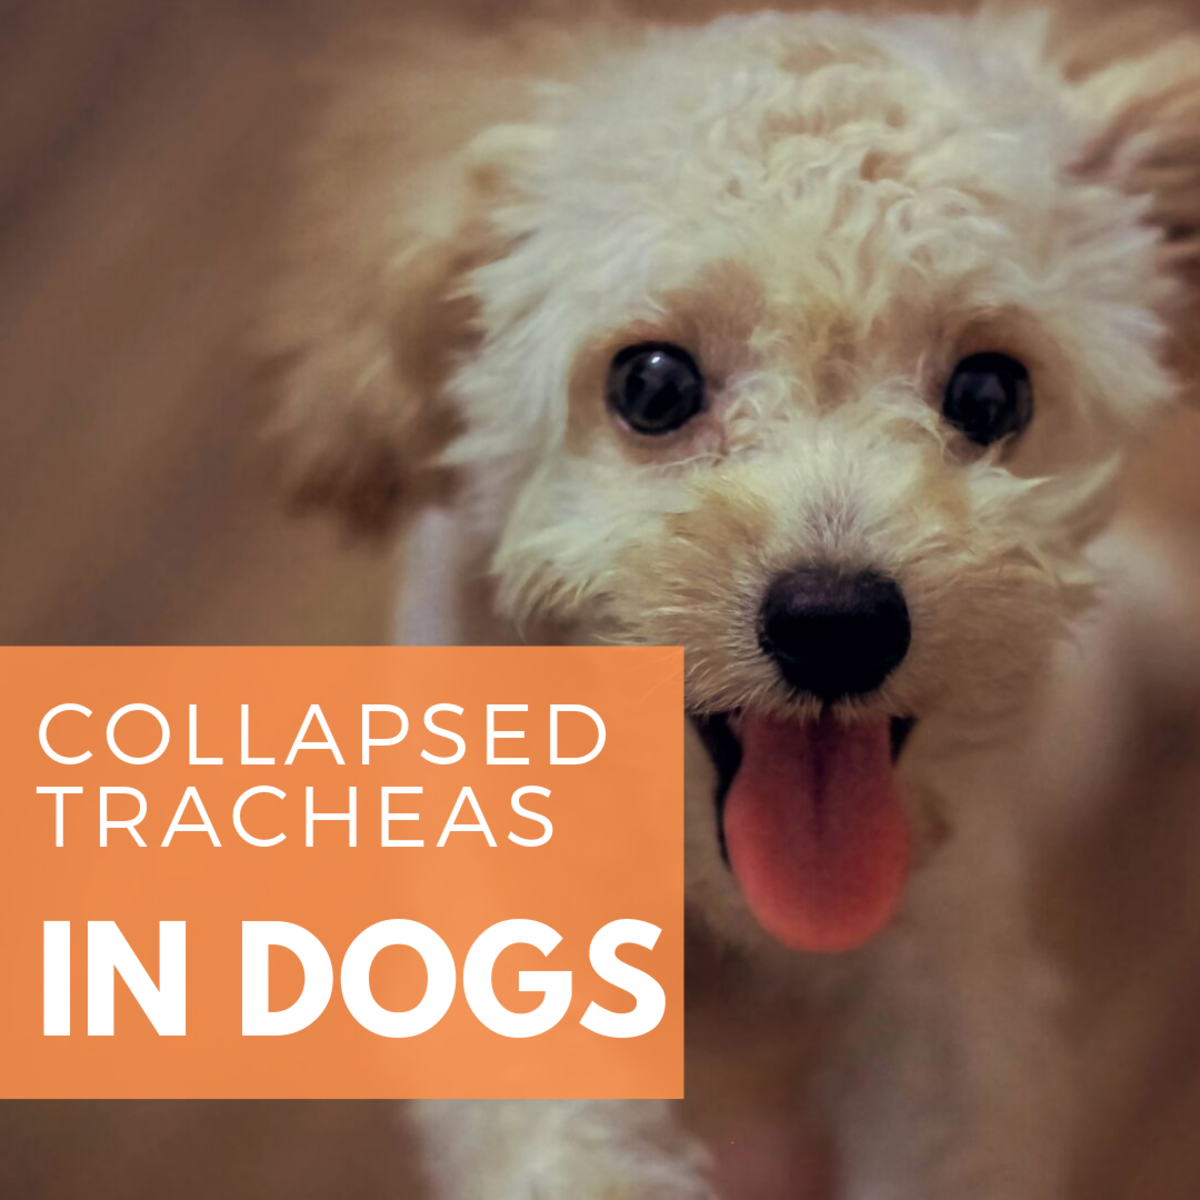 Small Dogs Are Predisposed to Collapsed Tracheas